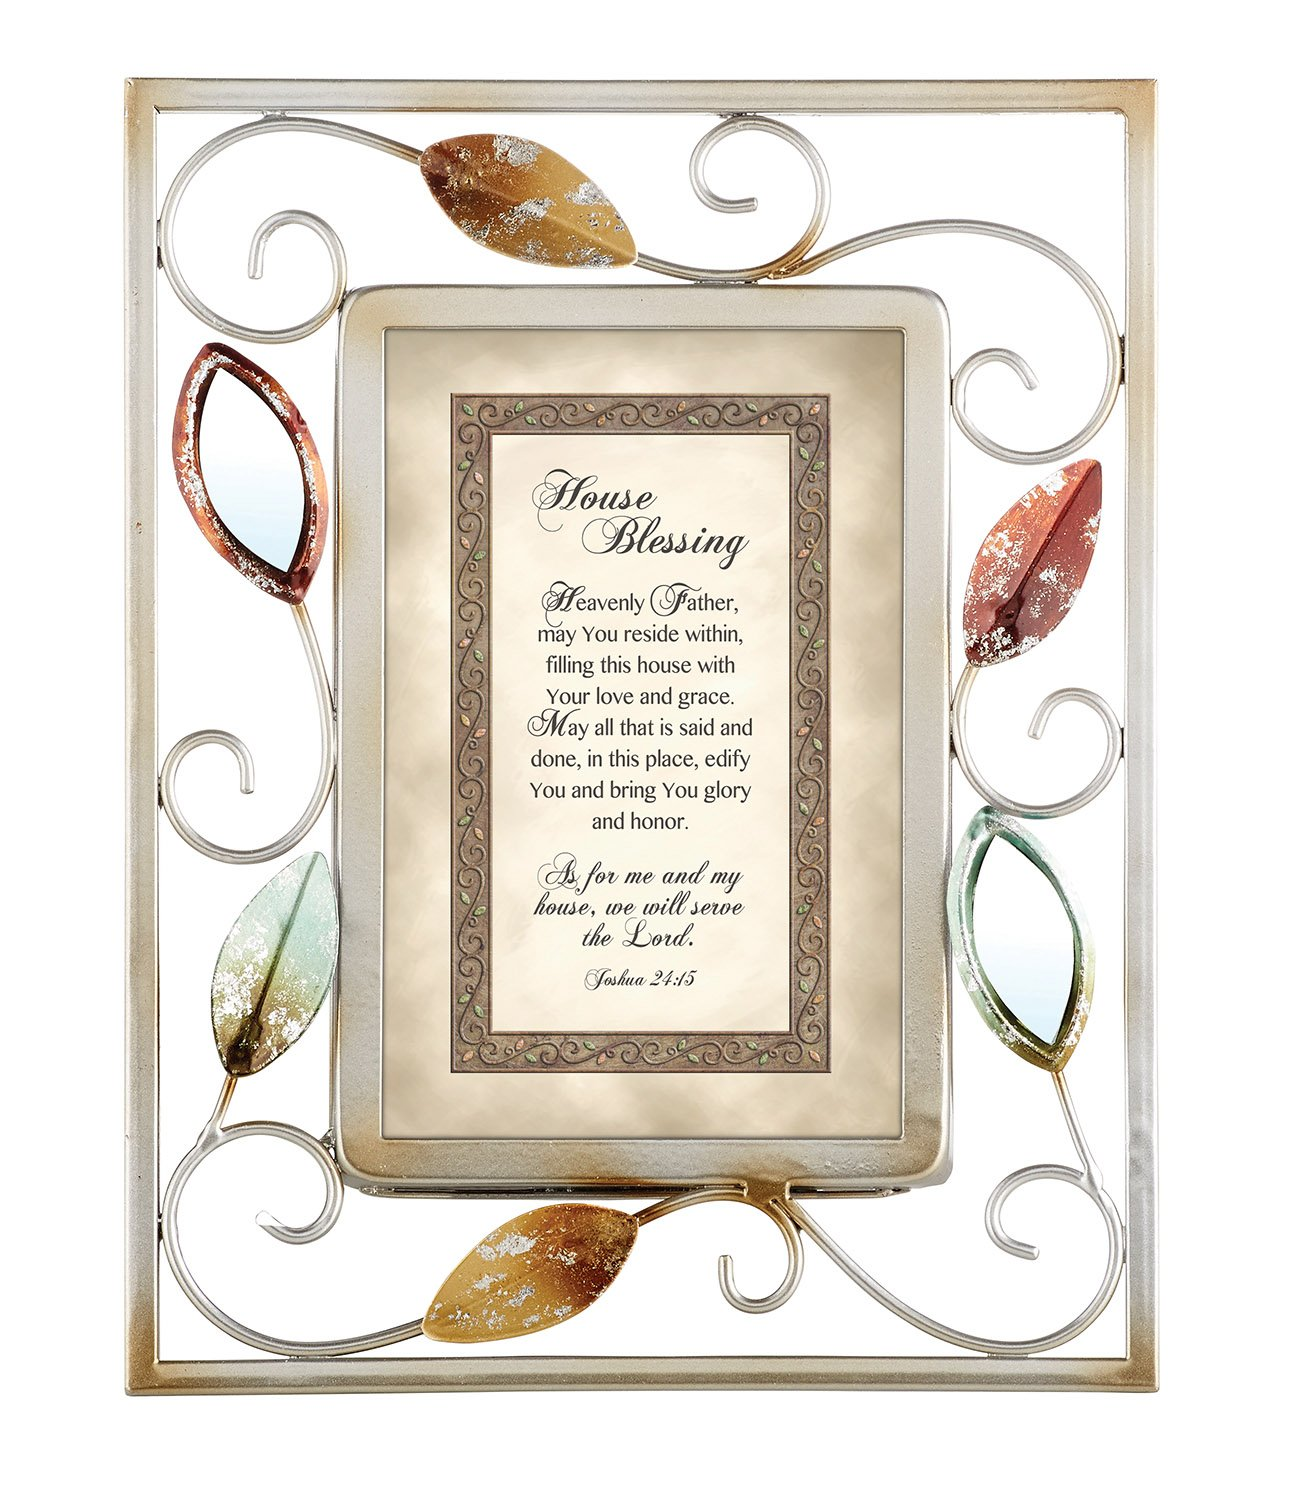 CB Gift Heartwarming Expressions House Blessing Metal Framed Print